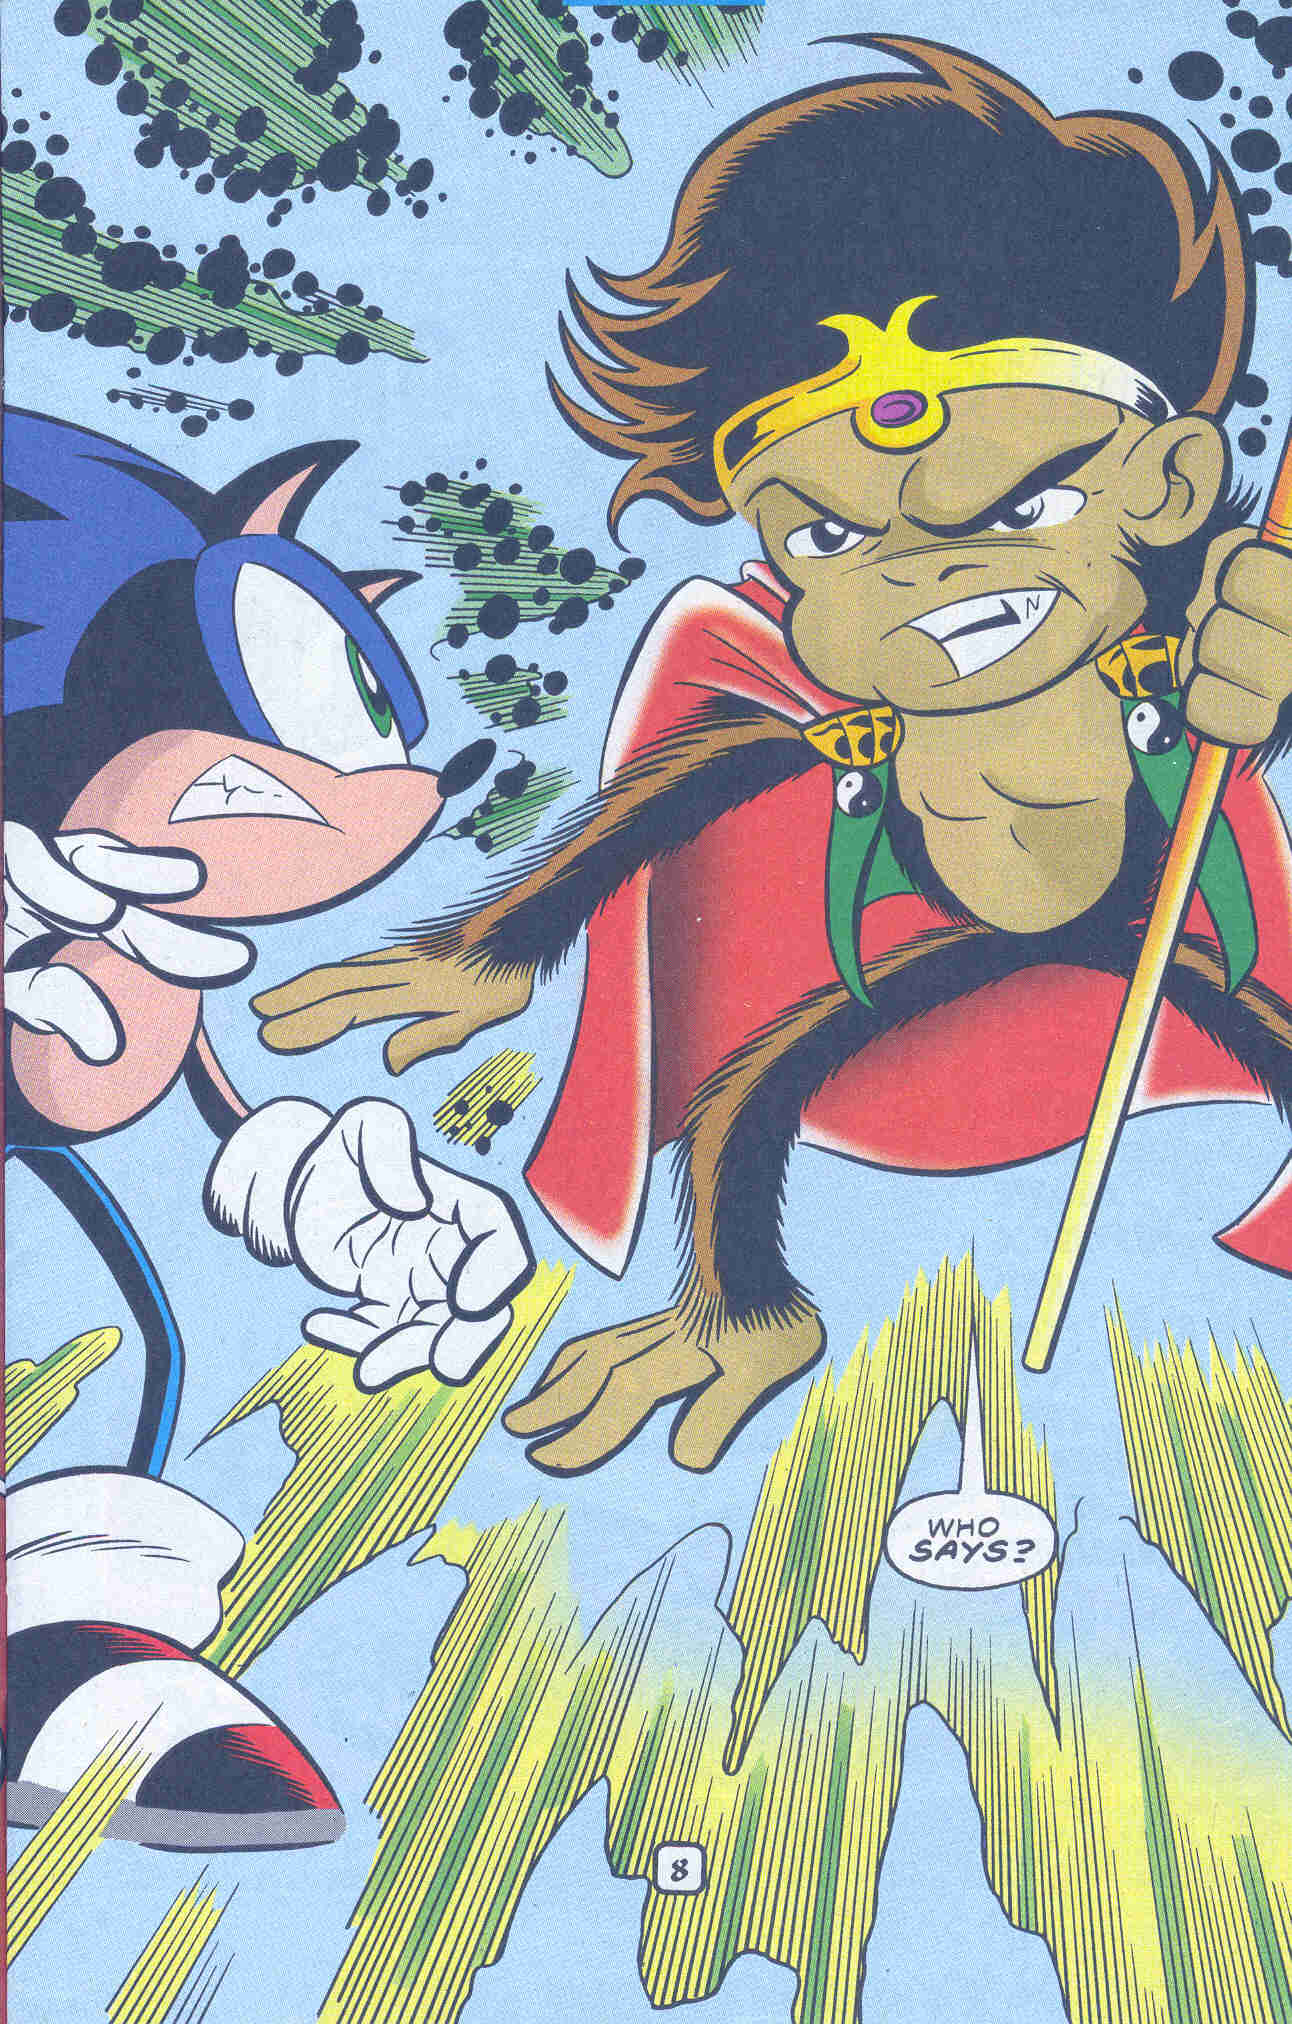 Sonic - Archie Adventure Series March 2001 Page 08